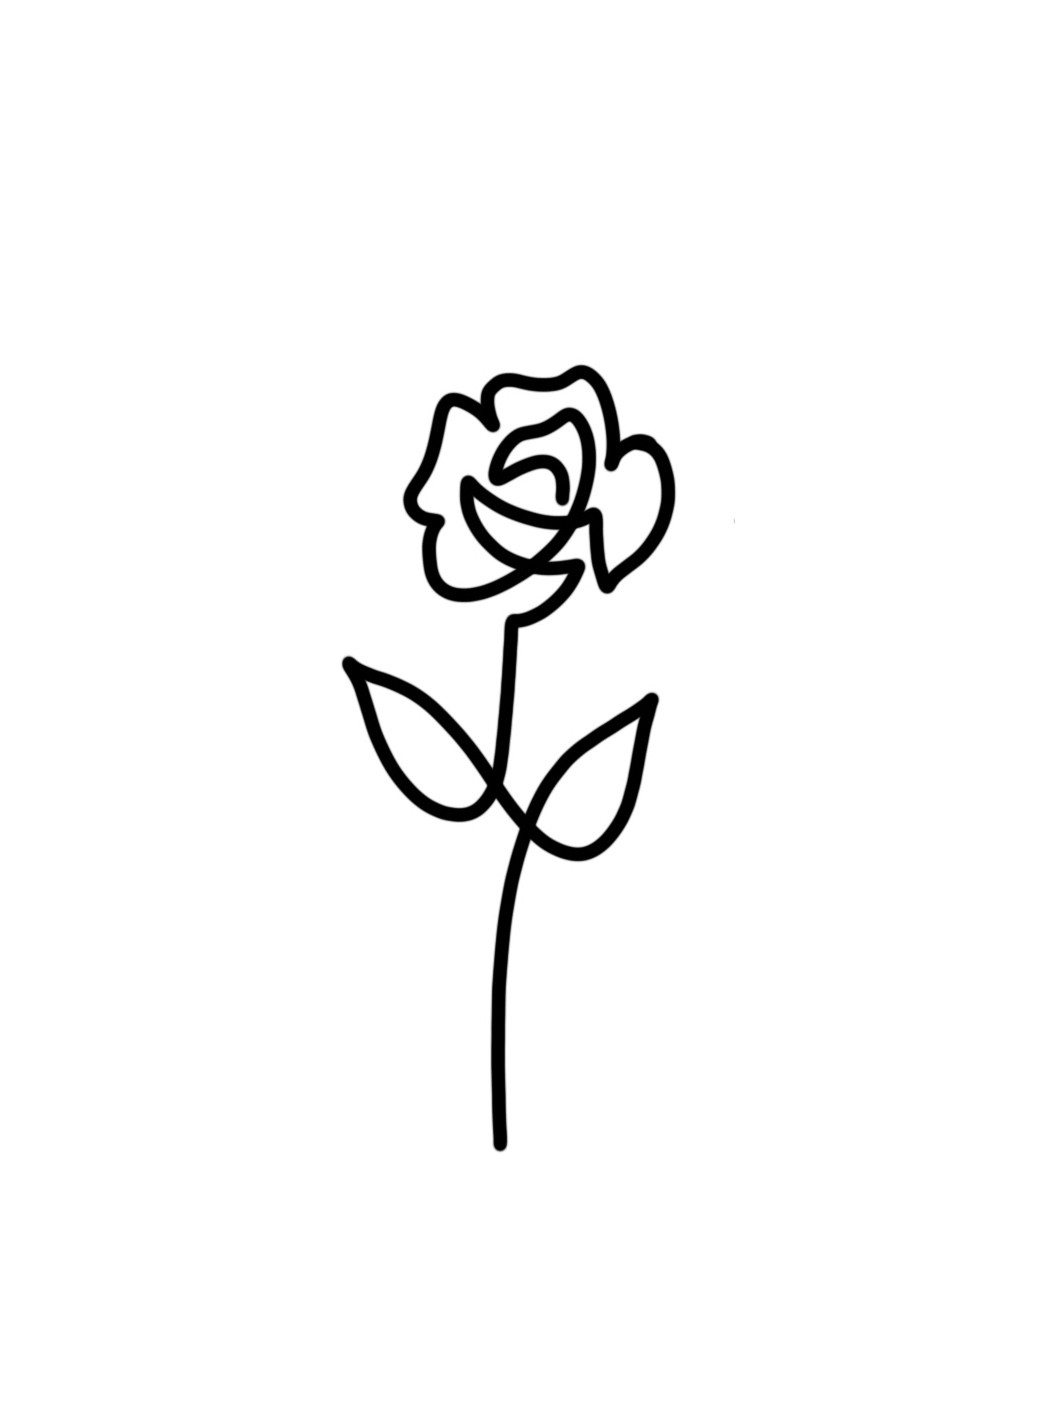 Simple Rose Line Drawing | Free download on ClipArtMag